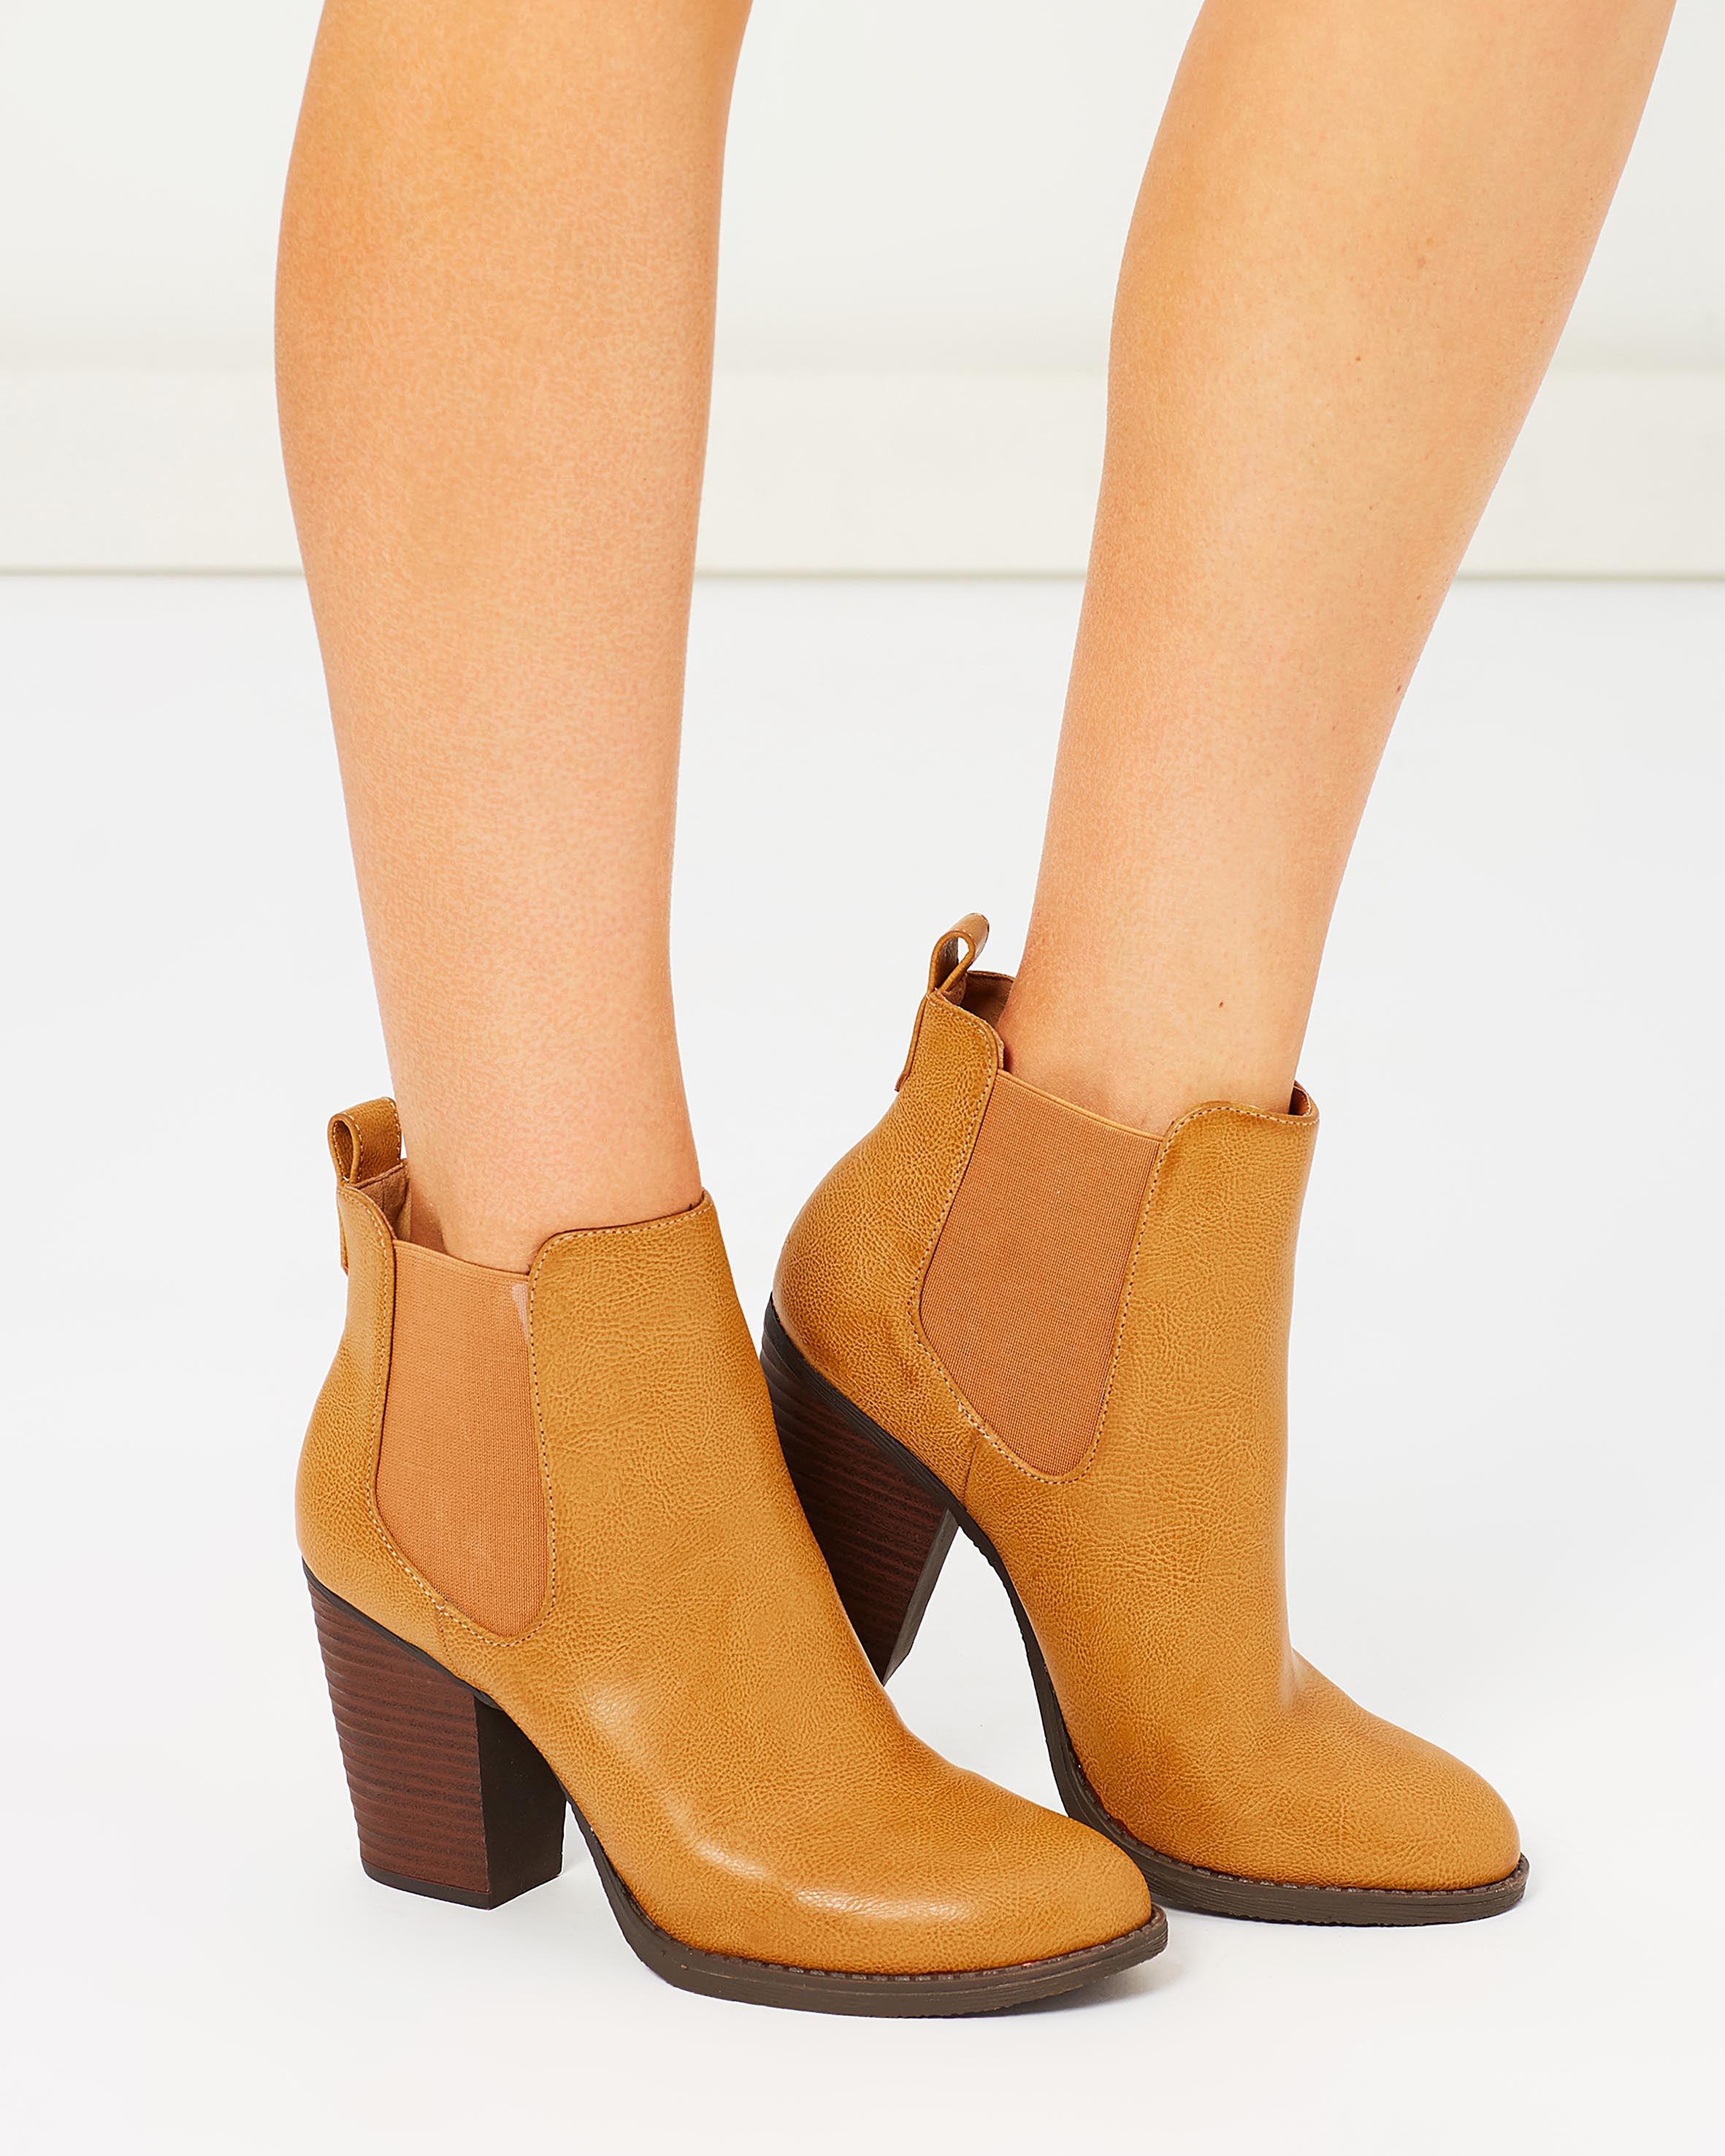 Tan Ankle Boots For Women